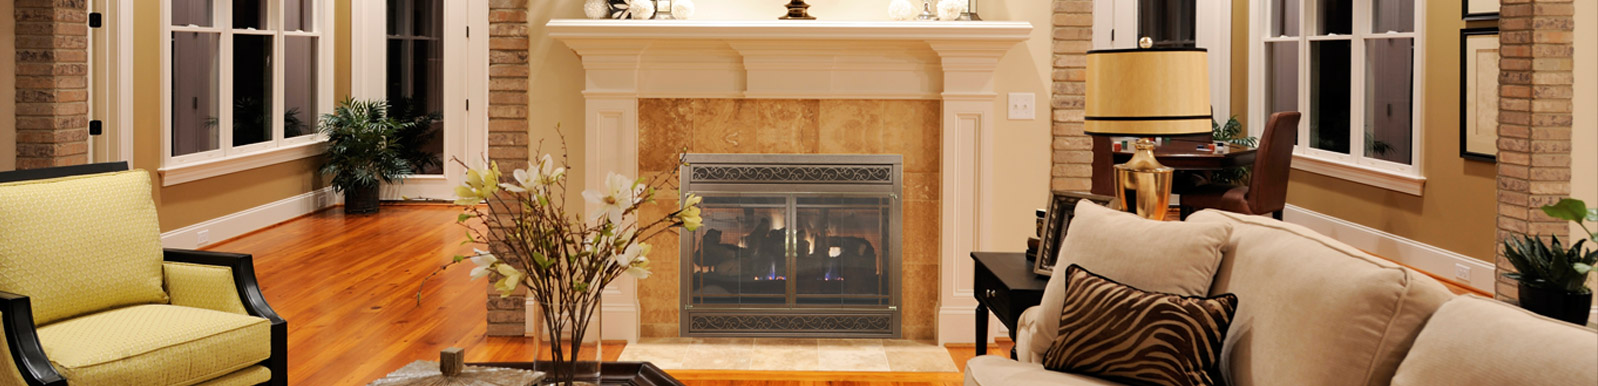 Delightful Chim Cherieu0027s House Of Fireplaces Des Moines Iowa   Stoves, Inserts, Wood  And Gas Fireplaces